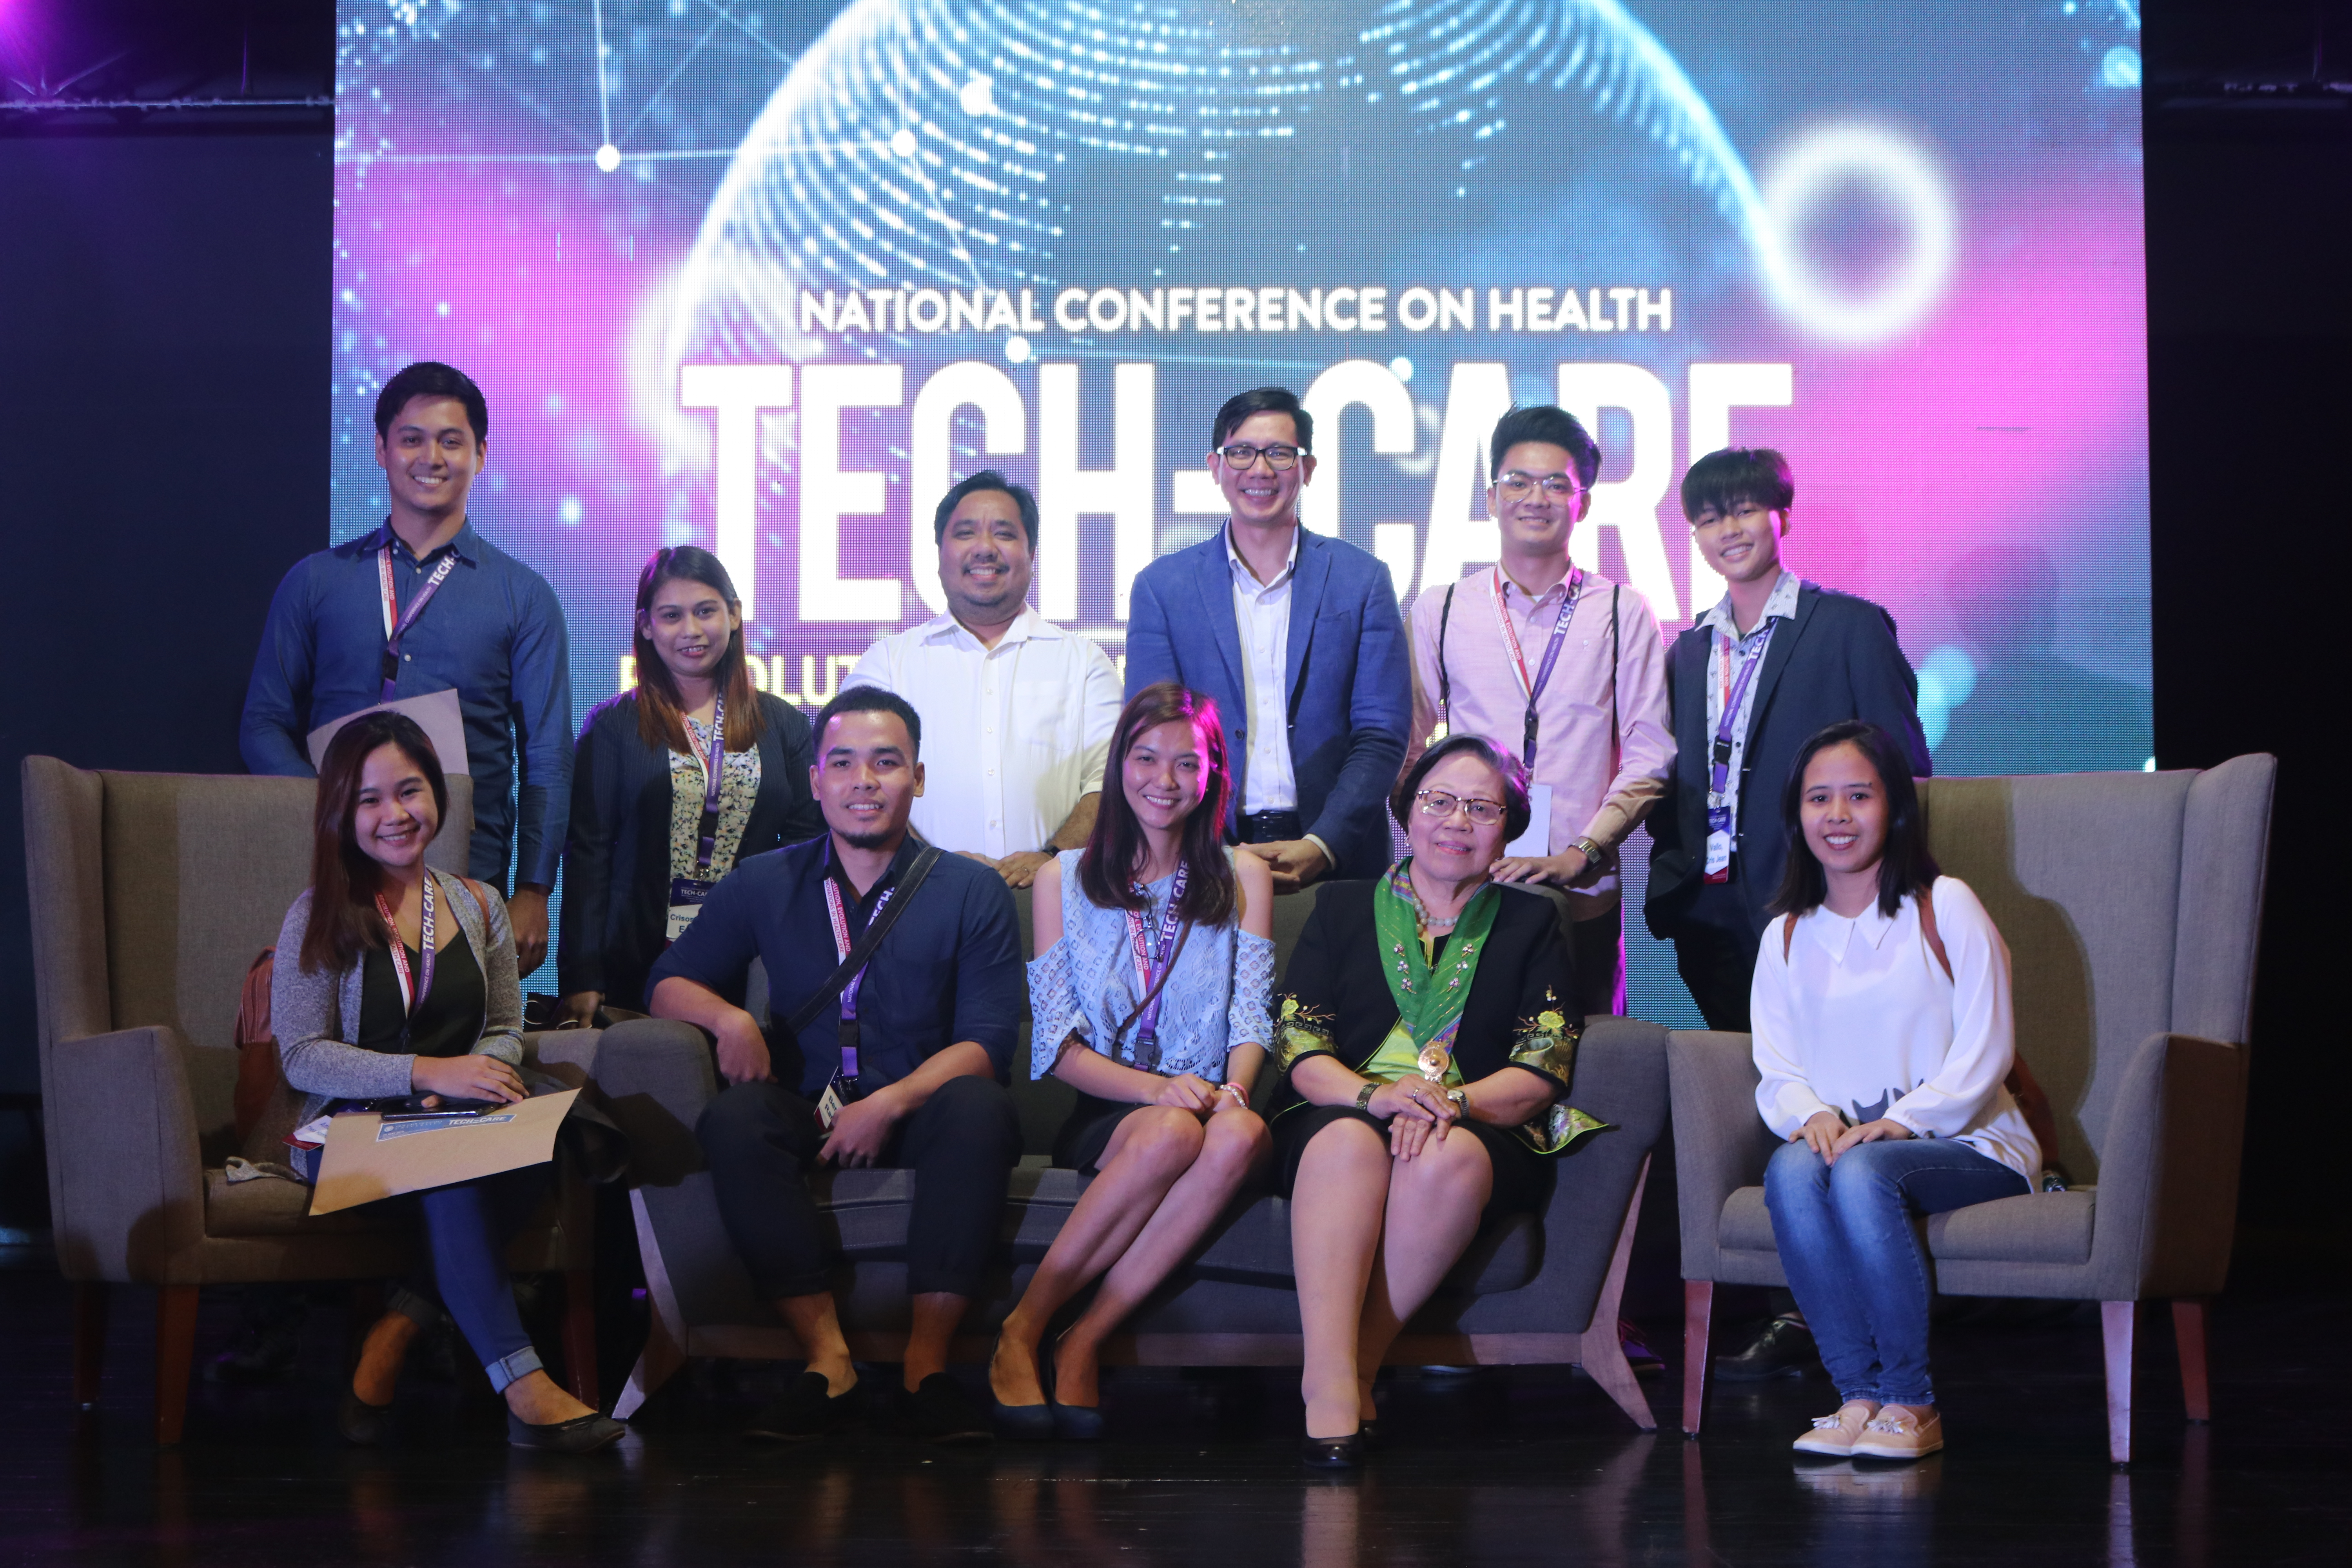 OLFU-hosted Tech-Care Conference champions Patient-Centered Health Care in the Technological Age